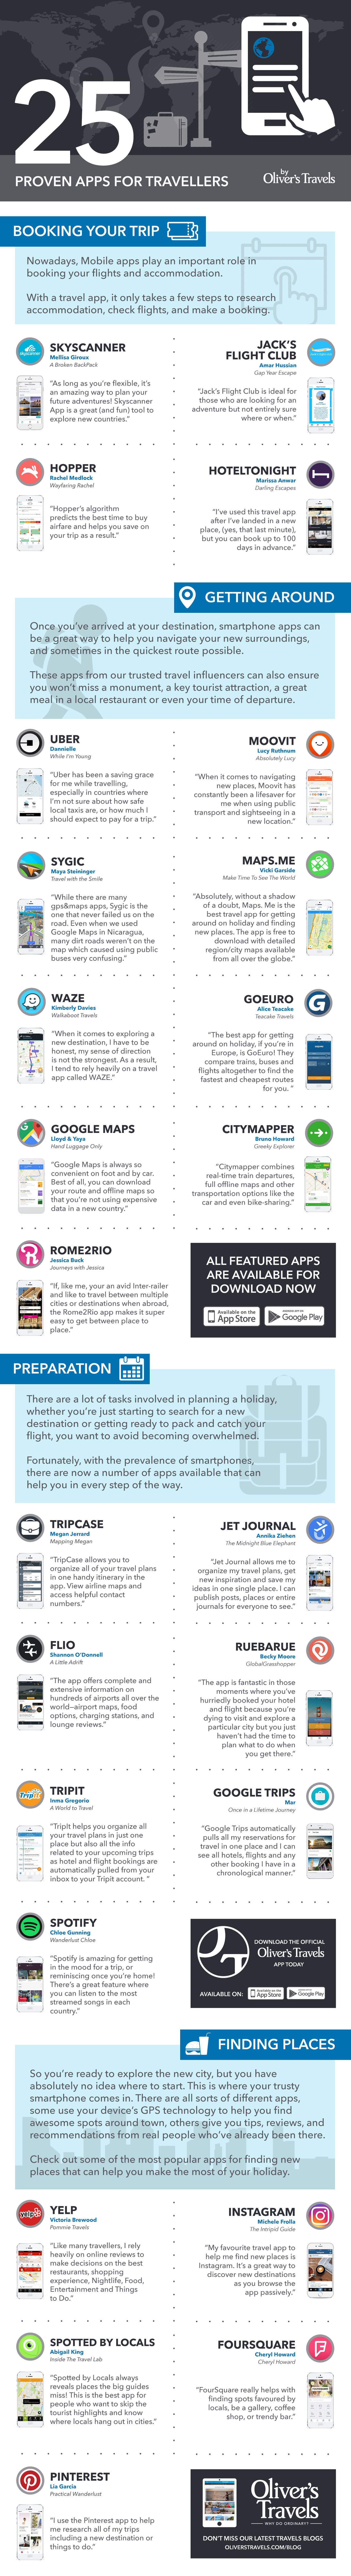 The 25 Best Travel Apps (Infographic) -BOOKING YOUR TRIP: Skyscanner App is a great (and fun) tool to explore new countries. As long as you are flexible, Skyscanner app is an amazing way to plan your future adventures! Jack Flight Club App is ideal for those who are looking for an adventure but not entirely sure where or when. Hopper App algorithm predicts the best time to buy airfare and helps you save on your trip as a result. HotelTonight travel app can be used after you have landed in a new place, (yes, that last minute), but you can book up to 100 days in advance. GETTING AROUND: Once you have arrived at your destination, smartphone apps can be a great way to help you navigate your new surroundings, and sometimes in the quickest route possible. These apps from our trusted travel influencers can also  a monument, a key tourist attraction, a great meal in a local restaurant or even your time of departure. Uber App has been a saving grace for me while travelling, especially in countries where I am not sure about how safe local taxis are, or how much I should expect to pay for a trip. When it comes to navigating new places, Moovit app has constantly been a lifesaver for me when using public transport and sightseeing in a new location. While there are many gps&maps apps, Sygic appis the one that never failed us on the road. Even when we used Google Maps in Nicaragua, many dirt roads were not on the map which caused using public buses very confusing. Absolutely, without a shadow of a doubt, Maps.Me is the best travel app for getting around on holiday and finding new places. The app is free to download with detailed region or city maps available from all over the globe. When it comes to exploring a new destination, I have to be honest, my sense of direction is not the strongest. As a result, I tend to rely heavily on a travel app called WAZE. The best app for getting around on holiday, if you are in Europe, is GoEuro! They compare trains, buses and flights altogether to find the fastest and cheapest routes for you. Google Maps is always so convenient on foot and by car. Best of all, you can download your route and offline maps so that you are not using expensive data in a new country. Citymapper app combines real-time train departures, full offline maps and other transportation options like the car and even bike-sharing. If your an avid Inter-railer and like to travel between multiple cities or destinations when abroad, the Rome2Rio app makes it super easy to get between place to place. PREPARATION: There are a lot of tasks involved in planning a holiday, whether you are just starting to search for a new destination or getting ready to pack and catch your flight, you want to avoid becoming overwhelmed. Fortunately, with the prevalence of smartphones, there are now a number of apps available that can help you in every step of the way. TripCase allows you to organize all of your travel plans in one handy itinerary in the app. View airline maps and access helpful contact numbers. Jet Journal allows me to organize my travel plans, get new inspiration and save my ideas in one single place. I can publish posts, places or entire journals for everyone to see. FLIO app offers complete and extensive information on hundreds of airports all over the world-airport maps, food options, charging stations, and lounge reviews. RueBaRue app is fantastic in those moments where you have hurriedly booked your hotel and flight because you are dying to visit and explore a particular city but you just have not had the time to plan what to do when you get there. Triplt helps you organize all your travel plans in just one place but also all the info related to your upcoming trips as hotel and flight bookings are automatically pulled from your inbox to your Tripit account. Google Trips automatically pulls all my reservations for travel in one place and I can see all hotels, flights and any other booking I have in a chronological manner. Spotify is amazing for getting in the mood for a trip, or reminiscing once you are home! There is a great feature where you can listen to the most streamed songs in each country. FINDING PLACES: So you are ready to explore the new city, but you have absolutely no idea where to start. This is where your trusty smartphone comes in. There are all sorts of different apps, some use your device  GPS technology to help you find awesome spots around town, others give you tips, reviews, and recommendations from real people who have already been there. Check out some of the most popular apps for finding new places that can help you make the most of your holiday. Yelp has over 135 million restaurant and business reviews worldwide. Like many travellers, I rely heavily on online reviews at to make decisions on the best restaurants, shopping experience, Nightlife, Food, Entertainment and Things to Do. My favourite travel app to help me find new places is Instagram. It is a great way to discover new destinations as you browse the app passively. Spotted by Locals always reveals places the big guides miss! This is the best app for people who want to skip the tourist highlights and know where locals hang out in cities. FourSquare really helps with finding spots favoured by locals, be a gallery, coffee shop, or trendy bar. I also use the Pinterest app to help me research all of my trips including a new destination or things to do.